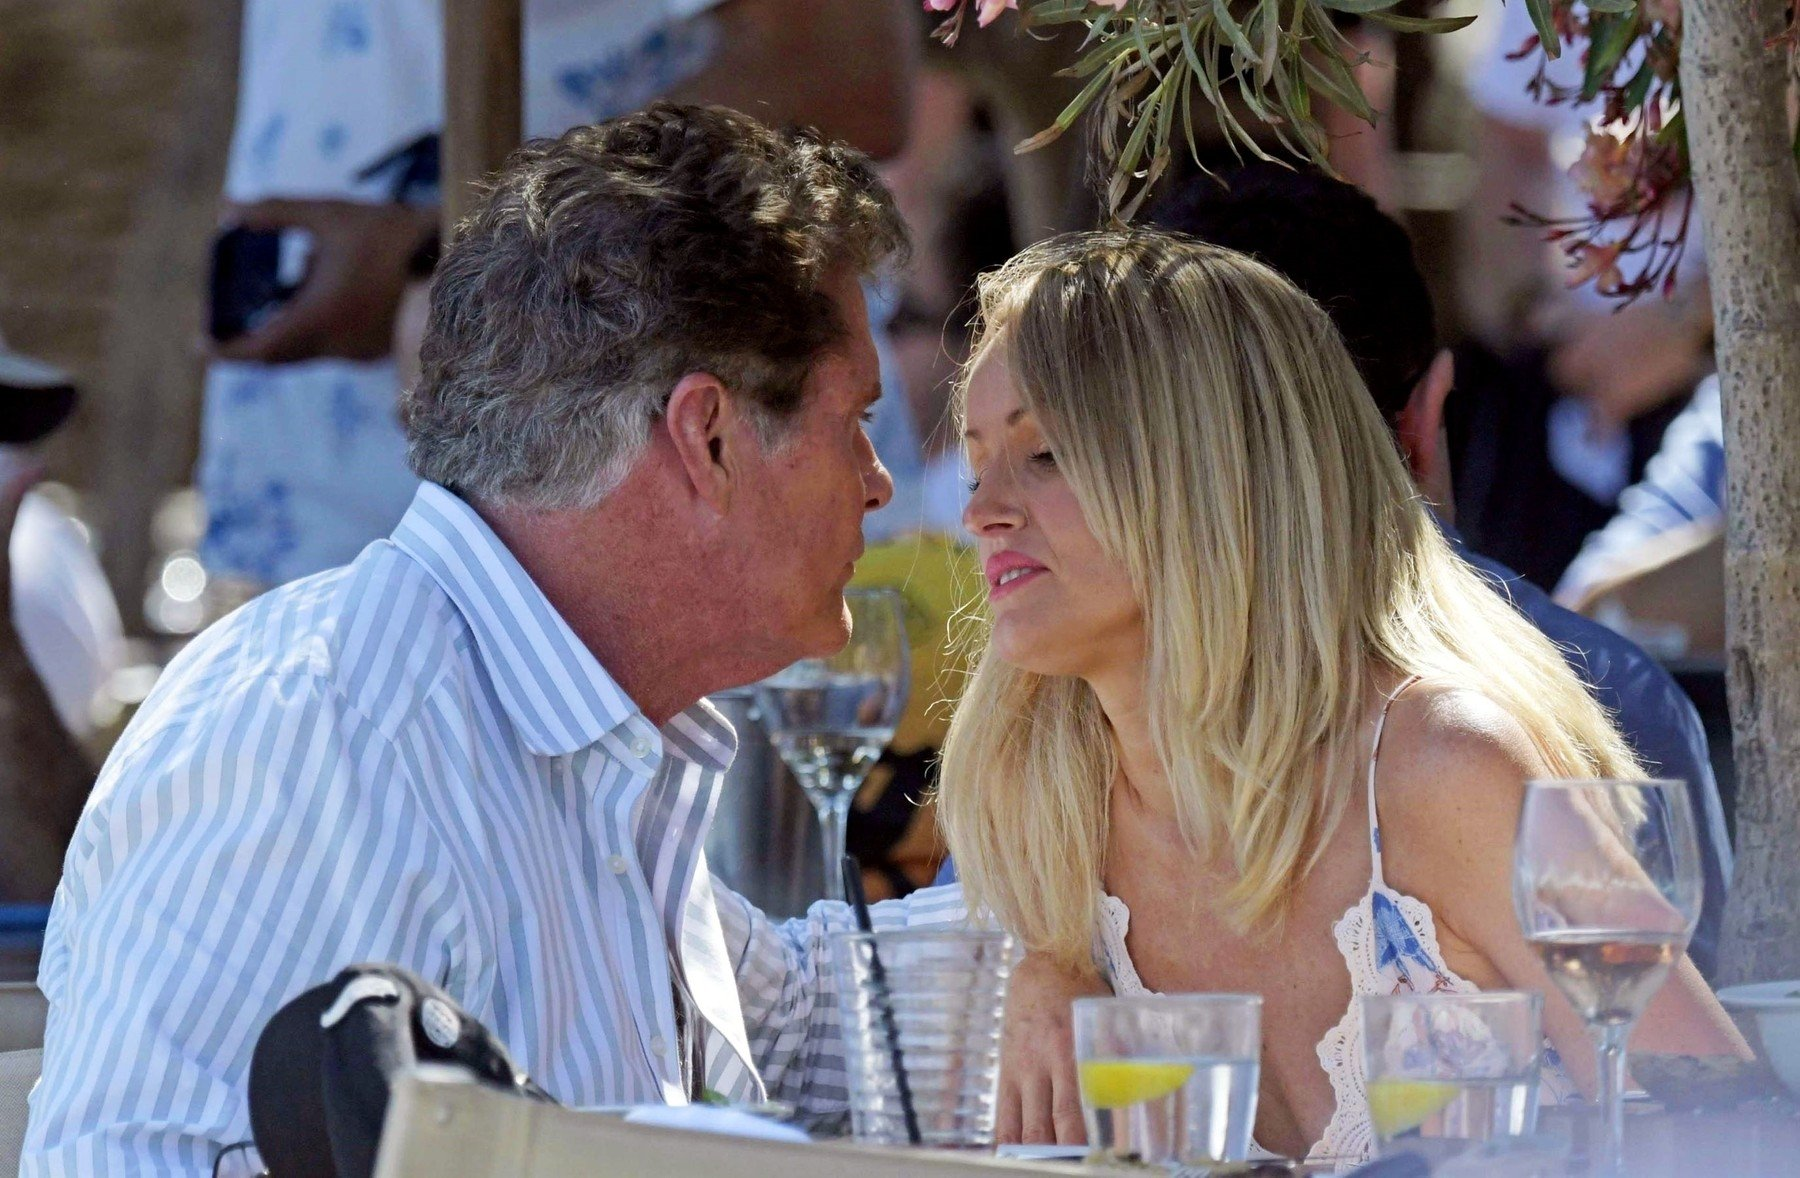 Mykonos, GREECE  - *EXCLUSIVE*  - *WEB MUST CALL FOR PRICING*  Former Knight Rider and Baywatch star David Hasselhoff and wife Hailey Roberts enjoy a romantic meal at Nammos on their Greek holiday in Mykonos.  The couple showed a public display of affection as they enjoyed a kiss at the dining table before walking hand in hand on the beach together.   Hailey wore a sexy floral little number and David was dressed all in white looking cool by donning his sunglasses.   *PICTURES TAKEN ON THE 08/06/19*  *UK Clients - Pictures Containing Children Please Pixelate Face Prior To Publication*, Image: 445705296, License: Rights-managed, Restrictions: RIGHTS:  UNITED STATES, UNITED KINGDOM, AUSTRALIA, MEXICO, CANADA, JAPAN, CHINA, KOREA, DENMARK, RUSSIA, UKRAINE, ESTONIA, LITHUANIA, NORWAY, POLAND, SWEDEN, ANGOLA, BOTSWANA, KENYA, LESOTHO, MALAWI, MAURITIUS, MOZAMBIQUE, NAMIBIA, NIGERIA, SOUTH AFRICA, ZAMBIA, ZIMBABWE, FINLAND, BULGARIA, HUNGARY, ROMANIA, SERBIA, CZECH REPUBLIC, SLOVAKIA, BELARUS, ICELAND, IRELAND, ISRAEL, LATVIA, MOLDOVA, SLOVENIA, SWITZERLAND, COSTA RICA, CUBA, DOMINICA, DOMINICAN REPUBLIC, EL SALVADOR, GRENADA, GUATEMALA, NICARAGUA, PANAMA, PUERTO RICO, NEW ZEALAND, AUSTRIA, CYPRUS, GREECE, BELGIUM, NETHERLANDS, INDIA, INDONESIA, NORTH KOREA, PHILIPPINES, SOUTH KOREA, THAILAND, SAUDI ARABIA, SINGAPORE, TURKEY, UNITED ARAB EMIRATES, BOSNIA, CROATIA, LUXEMBOURG, BAHAMAS, BARBADOS, BELIZE, HAITI, HONDURAS, JAMAICA, SCOTLAND, MONACO, TURKS AND CAICOS ISLANDS, EGYPT, AZERBAIJAN, MALTA, LIBYA, MYANMAR, FRENCH POLYNESIA, TAIWAN, MOROCCO, CAPE VERDE, IVORY COAST, GHANA, MALDIVES, JORDAN, IRAN, SAINT BARTS, SAINT MARTIN, GUADELOUPE, MONTENEGRO, LEBANON, MALAYSIA, FIJI, UGANDA, CURACAO, CHAD, BANGLADESH, VIETNAM, ETHIOPIA, DJIBOUTI, TUNISIA, Model Release: no, Credit line: Profimedia, Backgrid UK